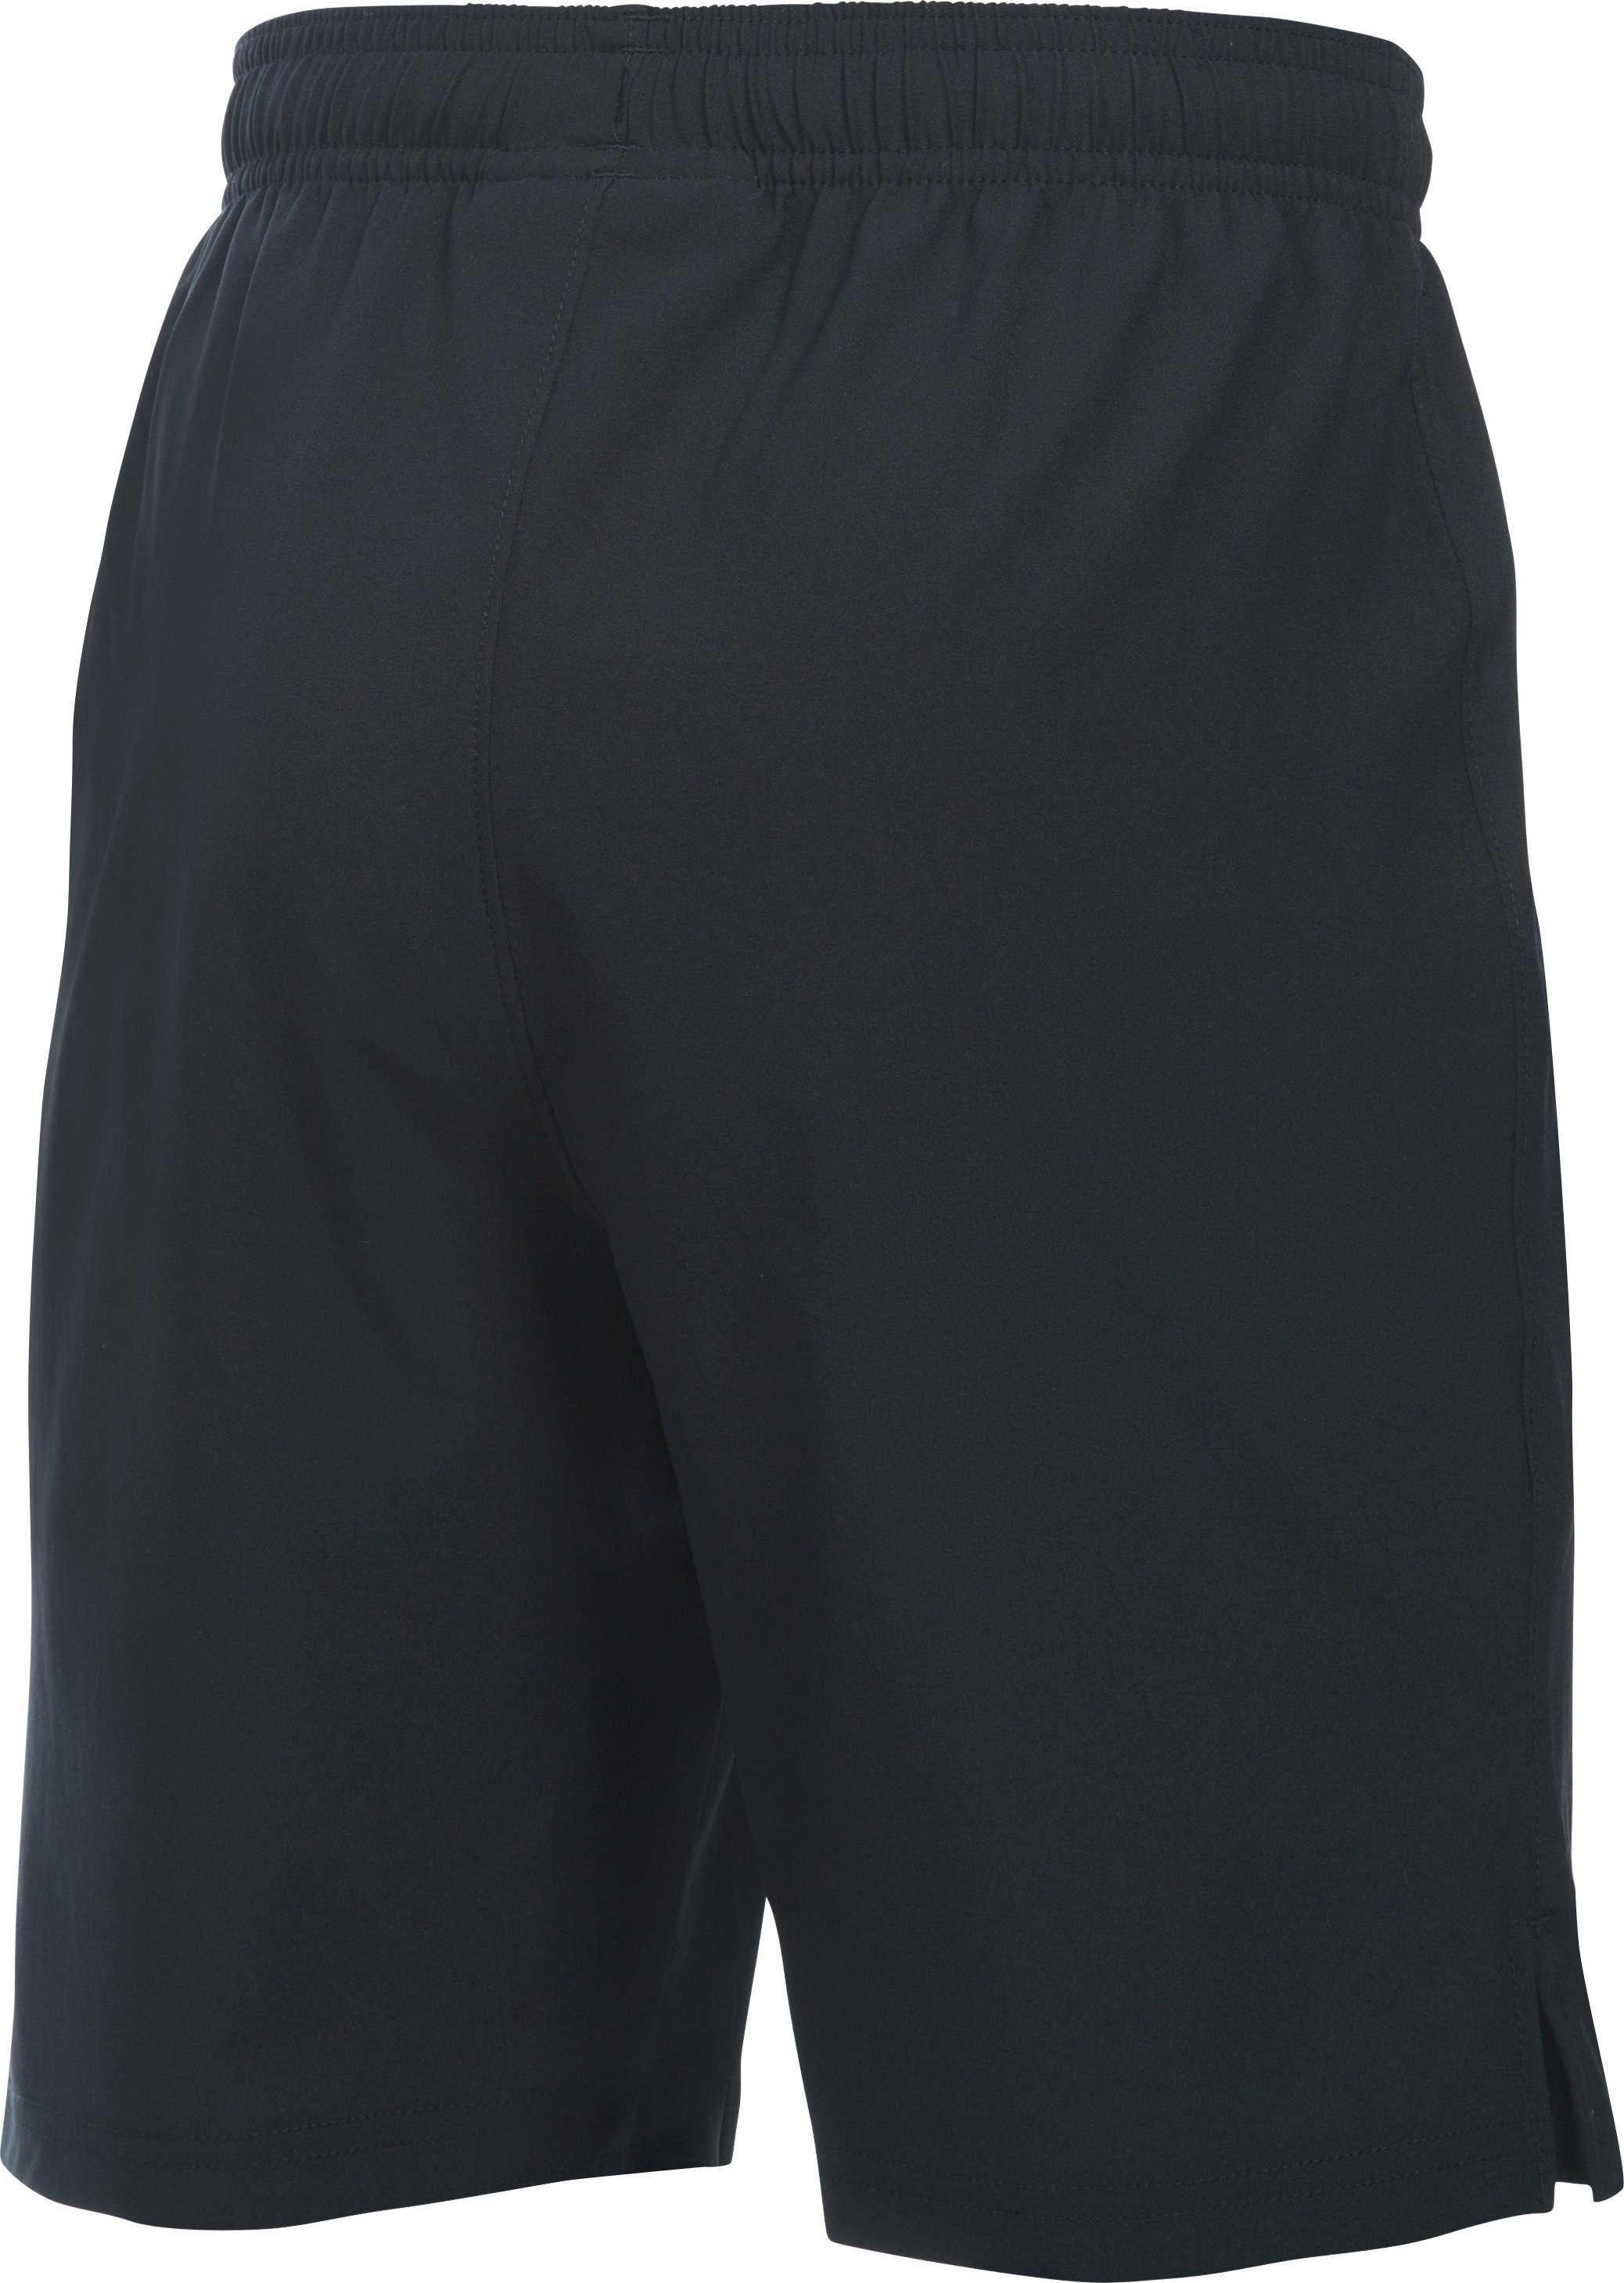 Boys' UA Hustle Shorts, Black ,